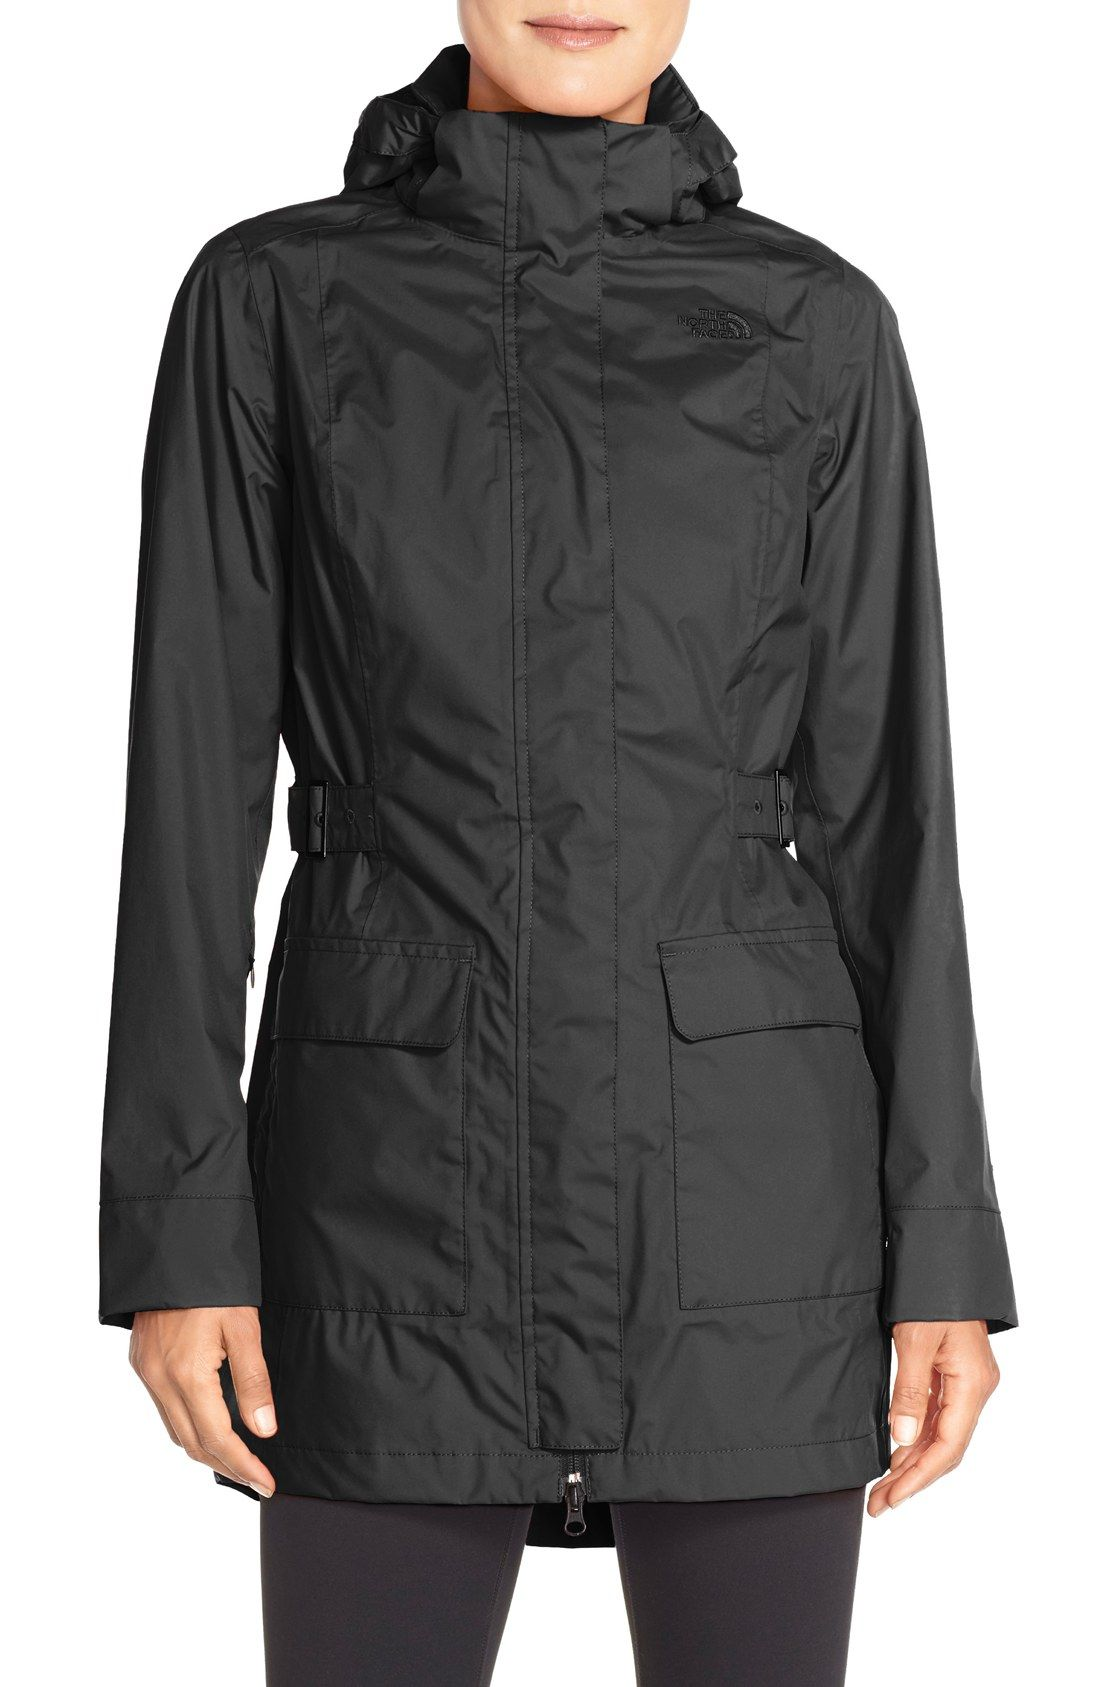 The North Face 'Tomales Bay' Waterproof Hooded Jacket